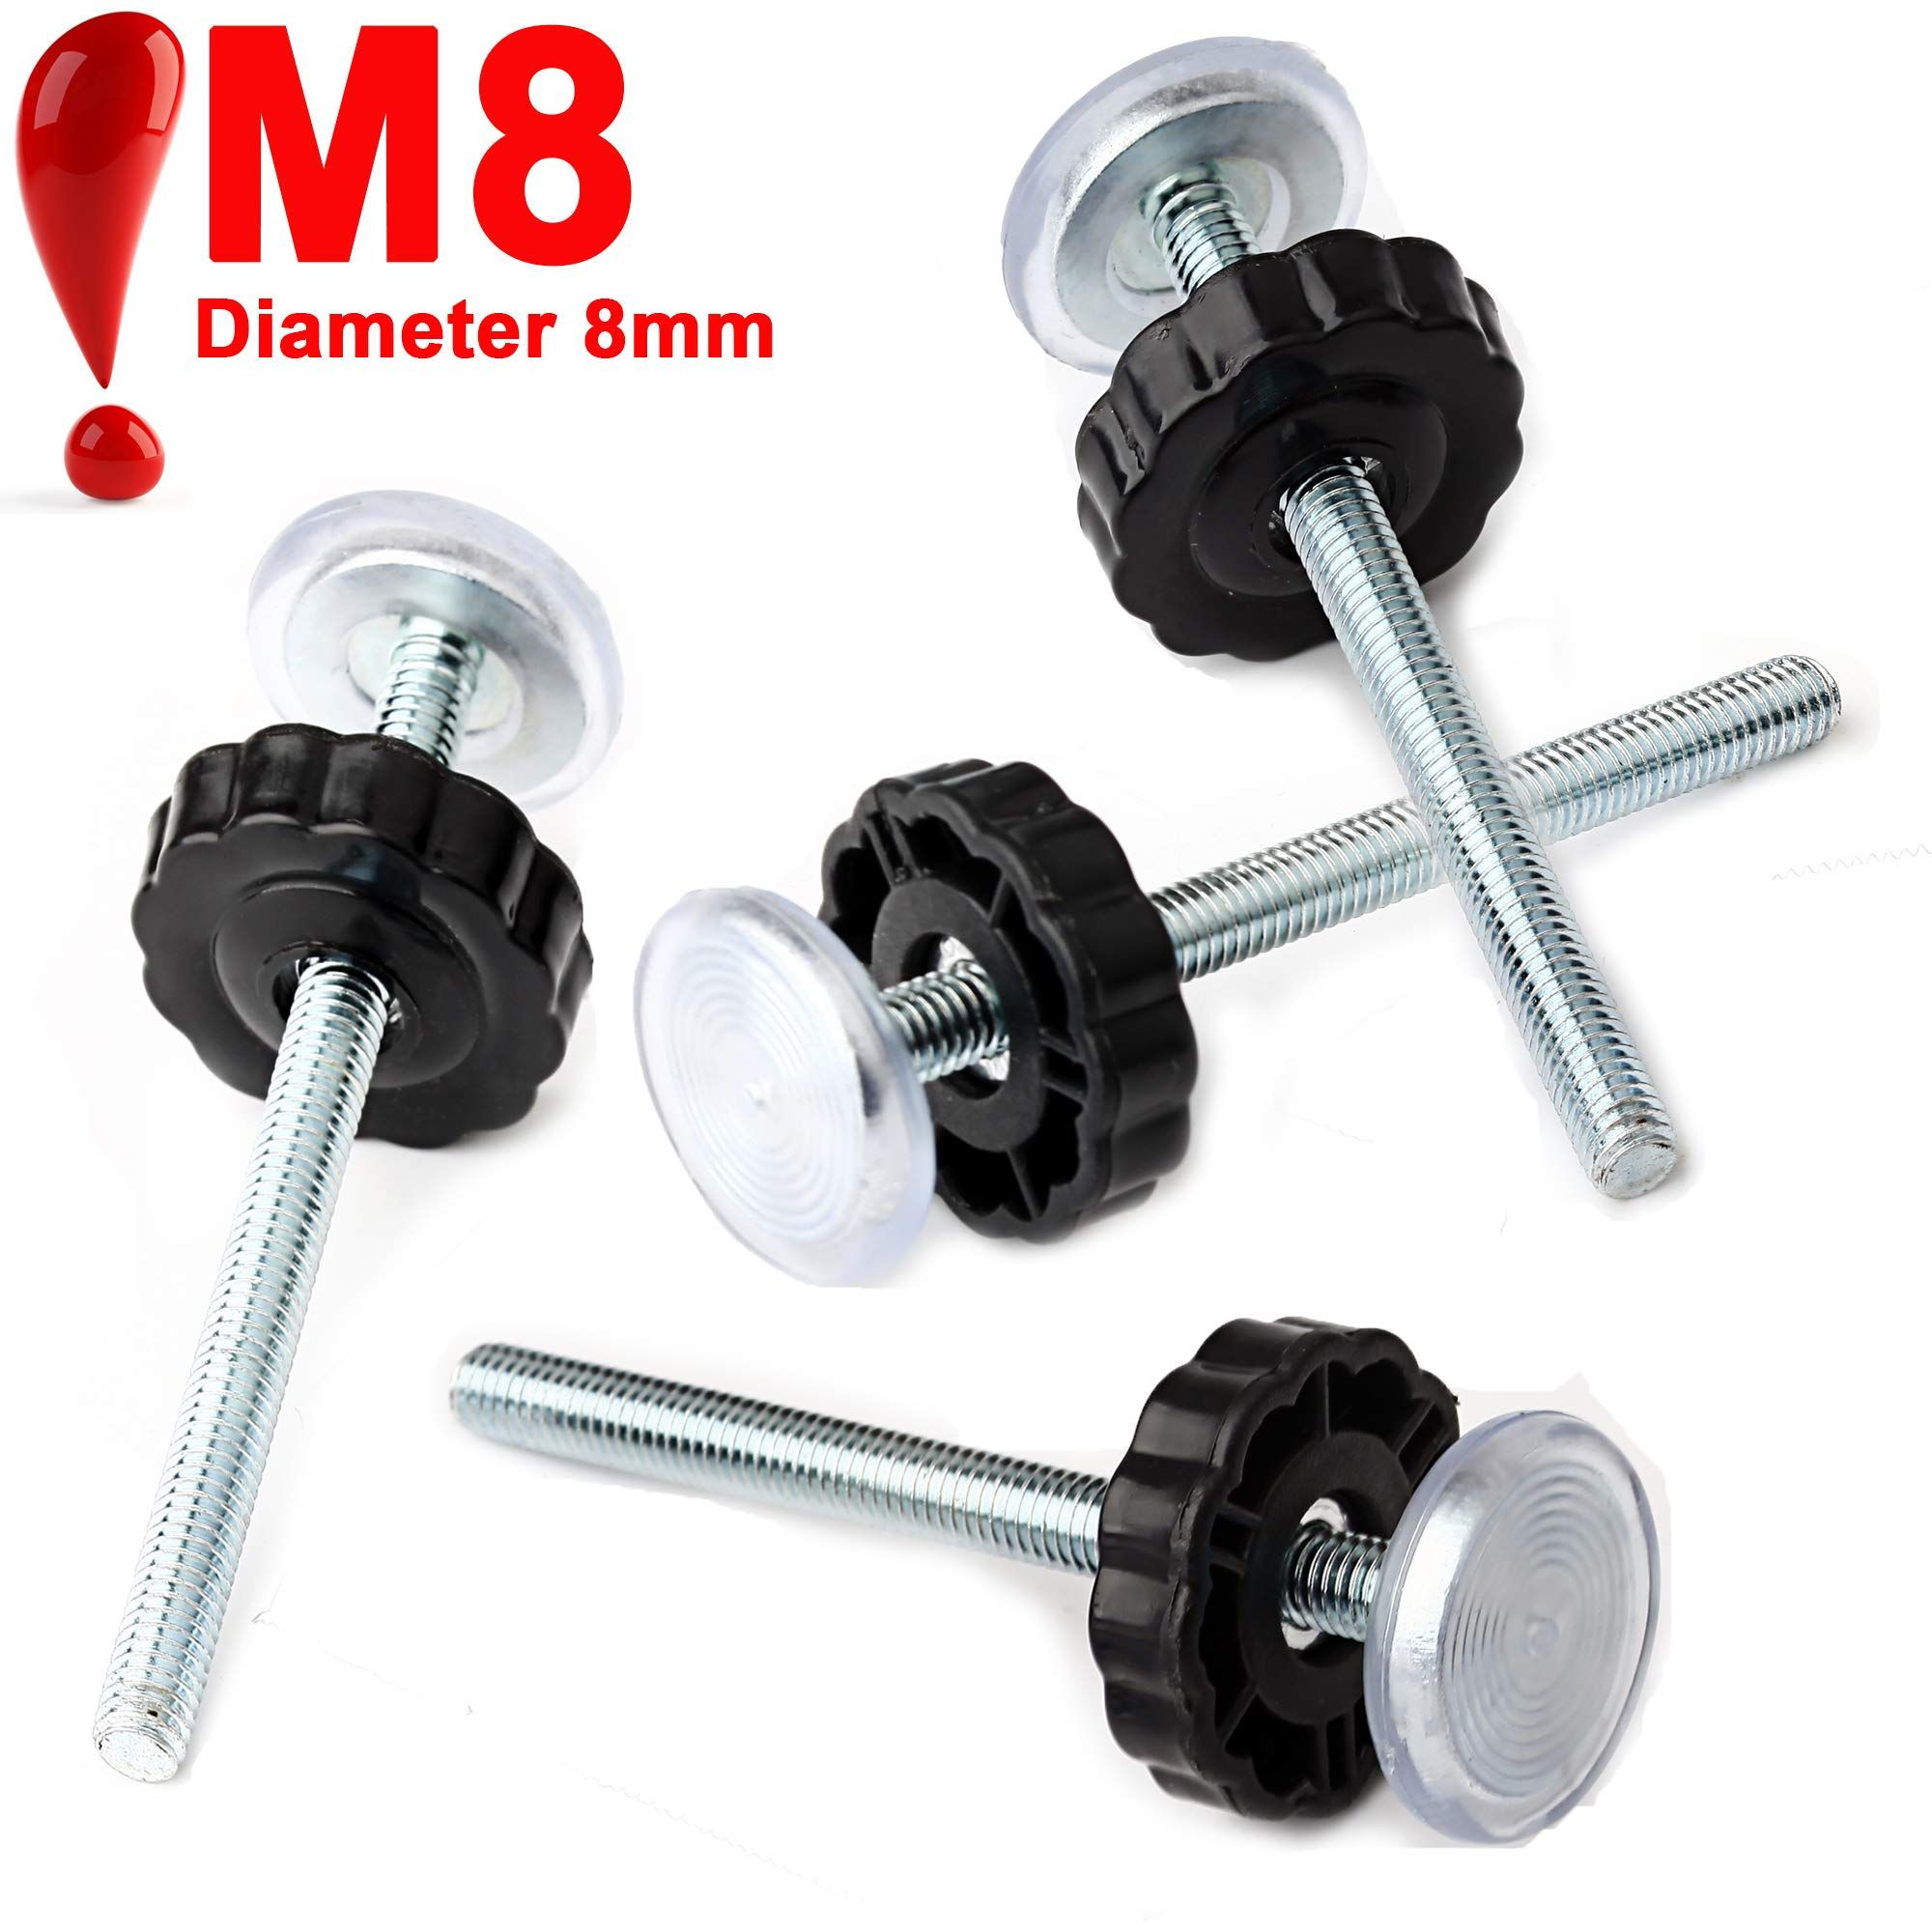 4 Pack 8mm Threaded Spindle Rods For Baby Gate Replacement Hardware Parts Kit For Pet And Dog Pressure Mounte Baby Gates Safety Gate Narrow Baby Gate